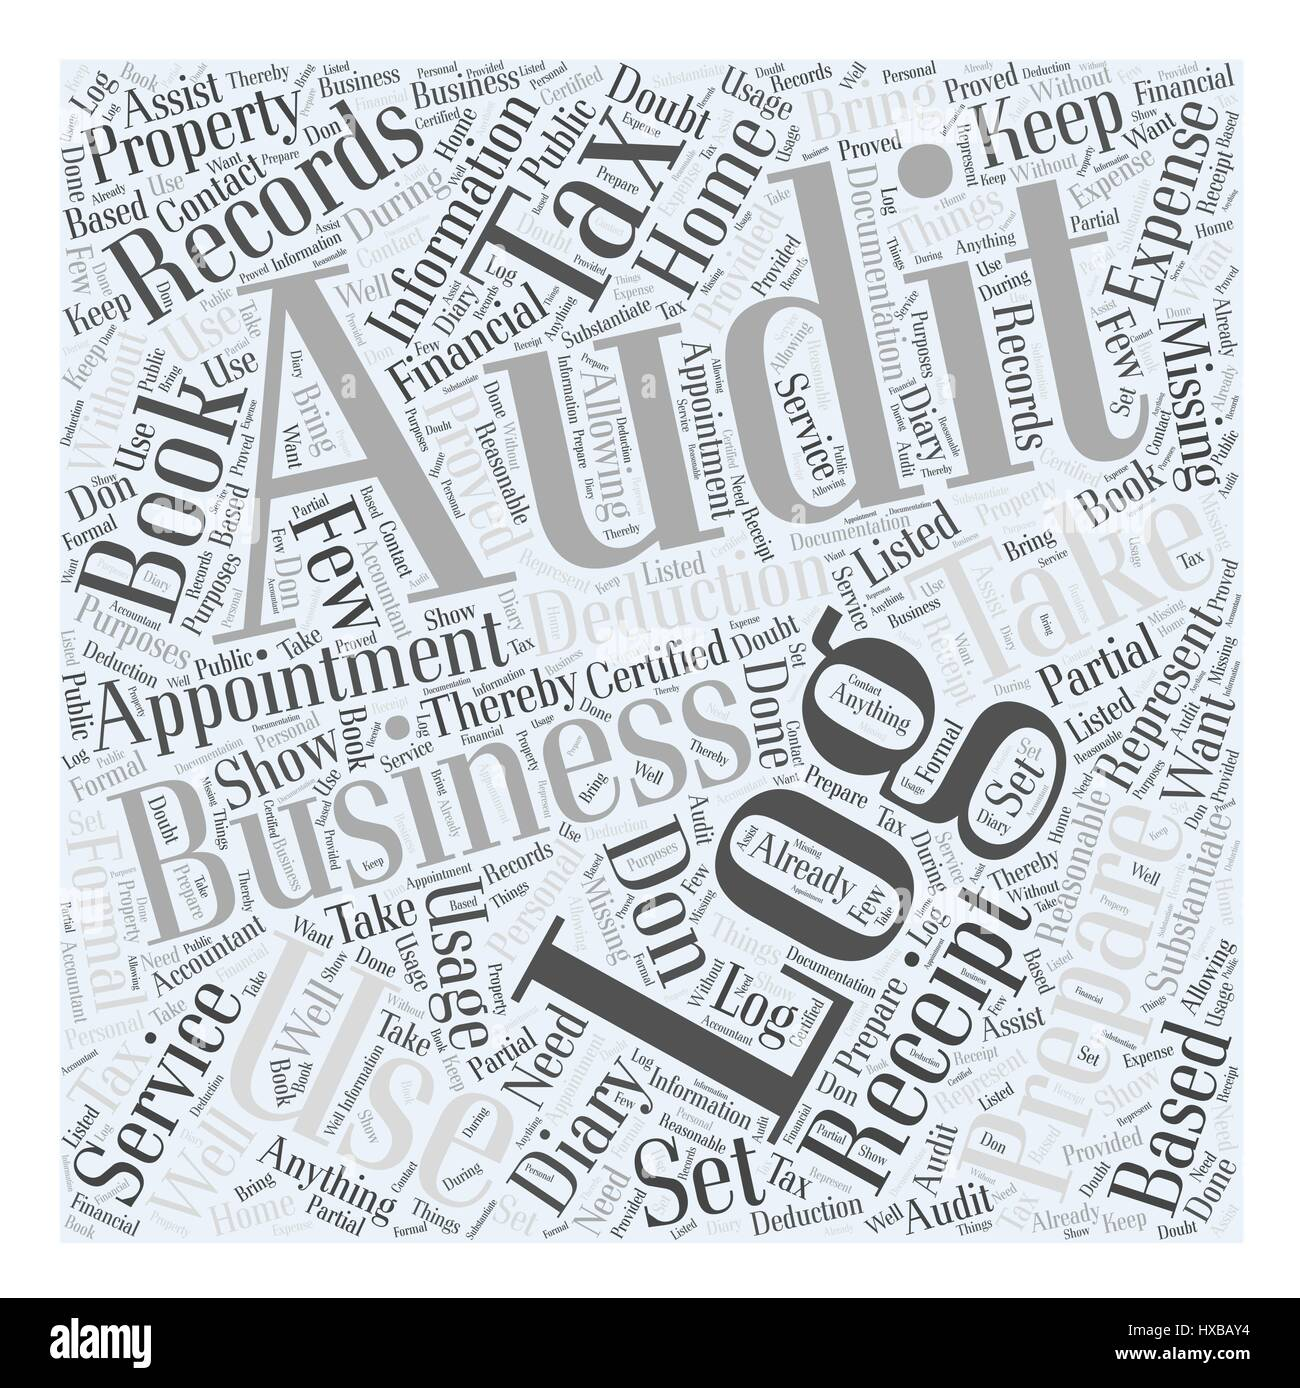 How to Prepare for a Tax Audit Word Cloud Concept - Stock Image